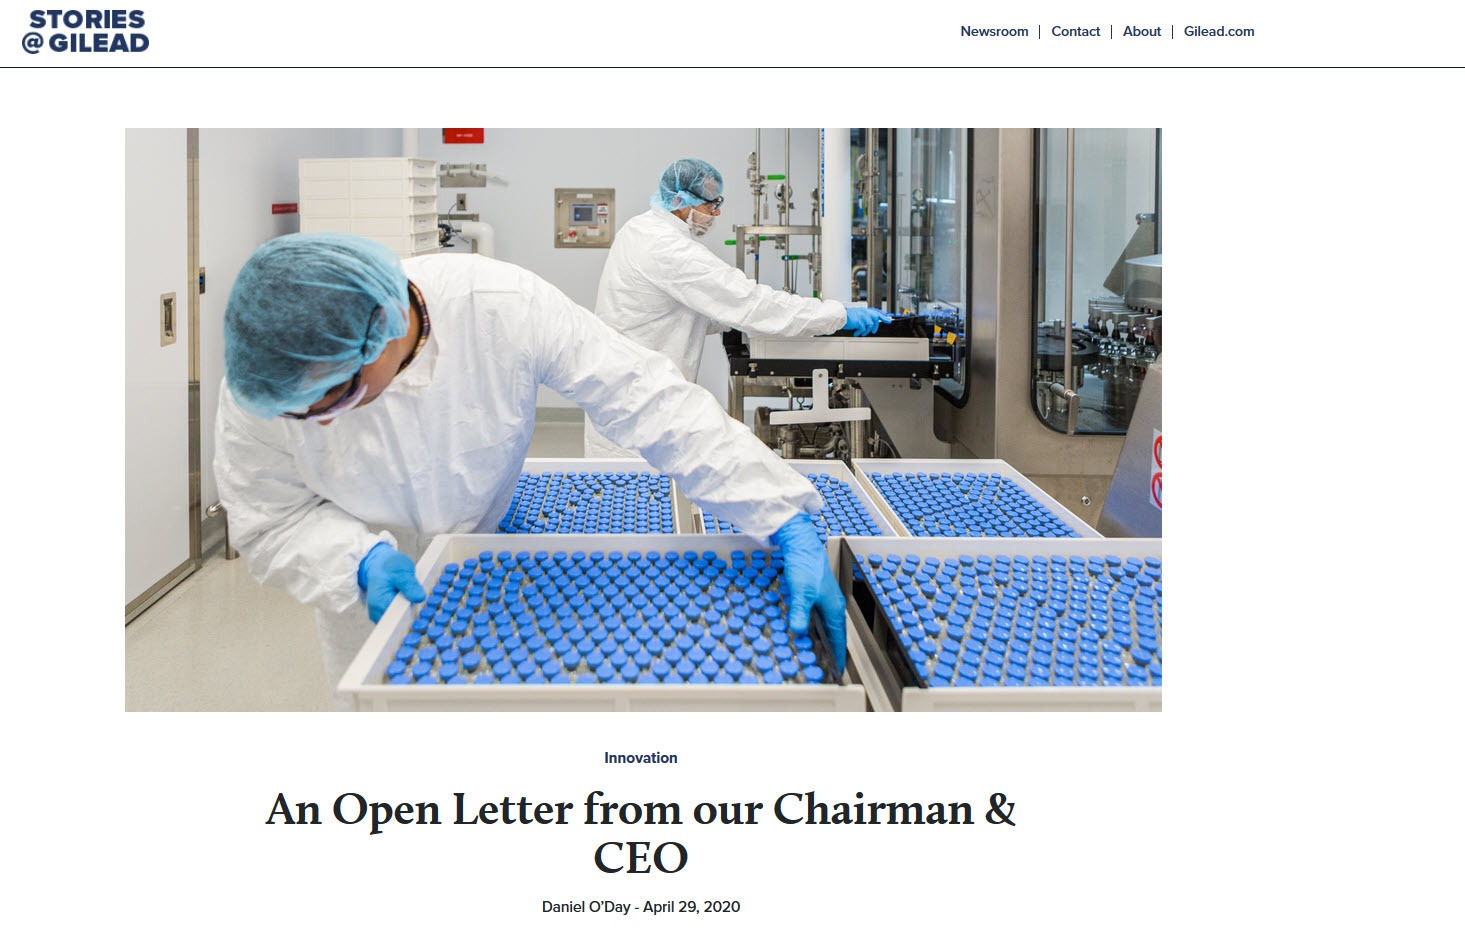 Gilead open letter from CEO